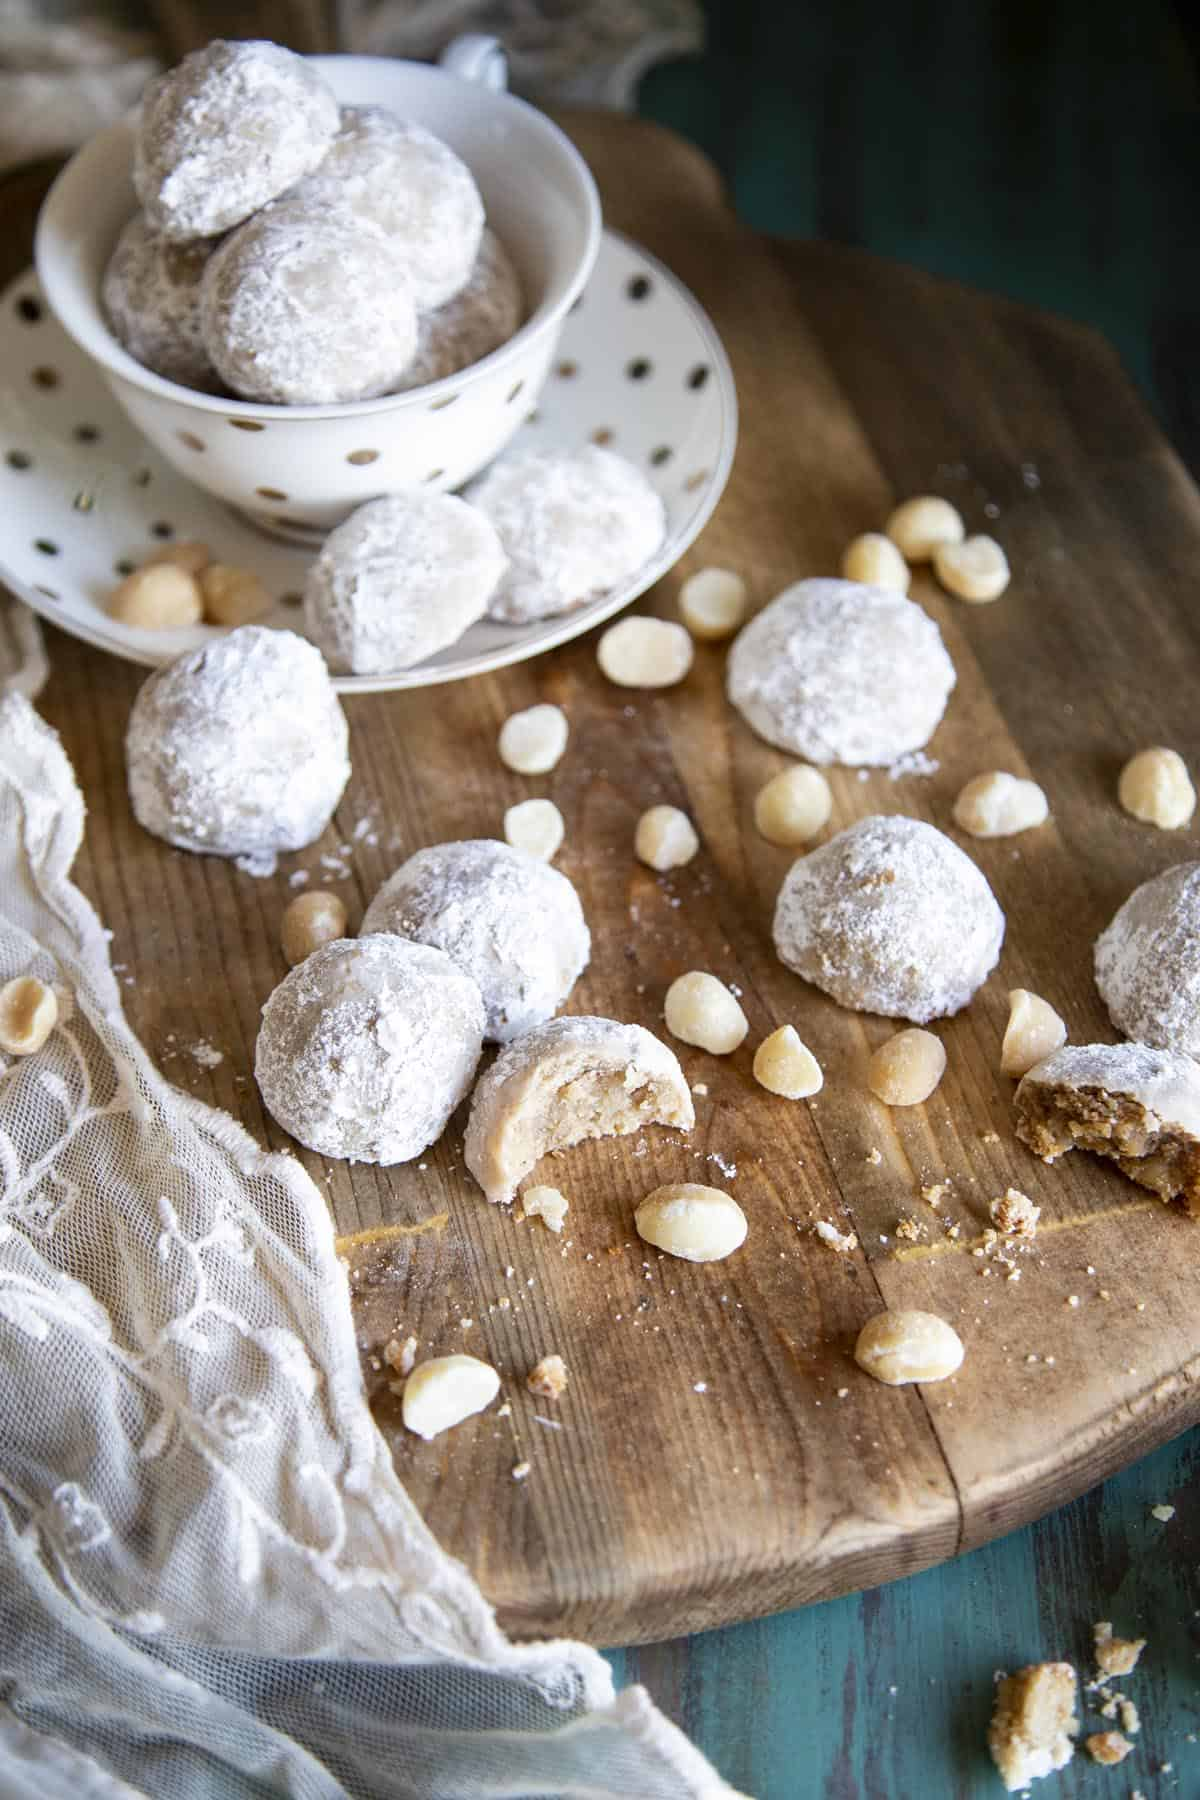 Snowball cookies spread on a wooden board with macadamia nuts